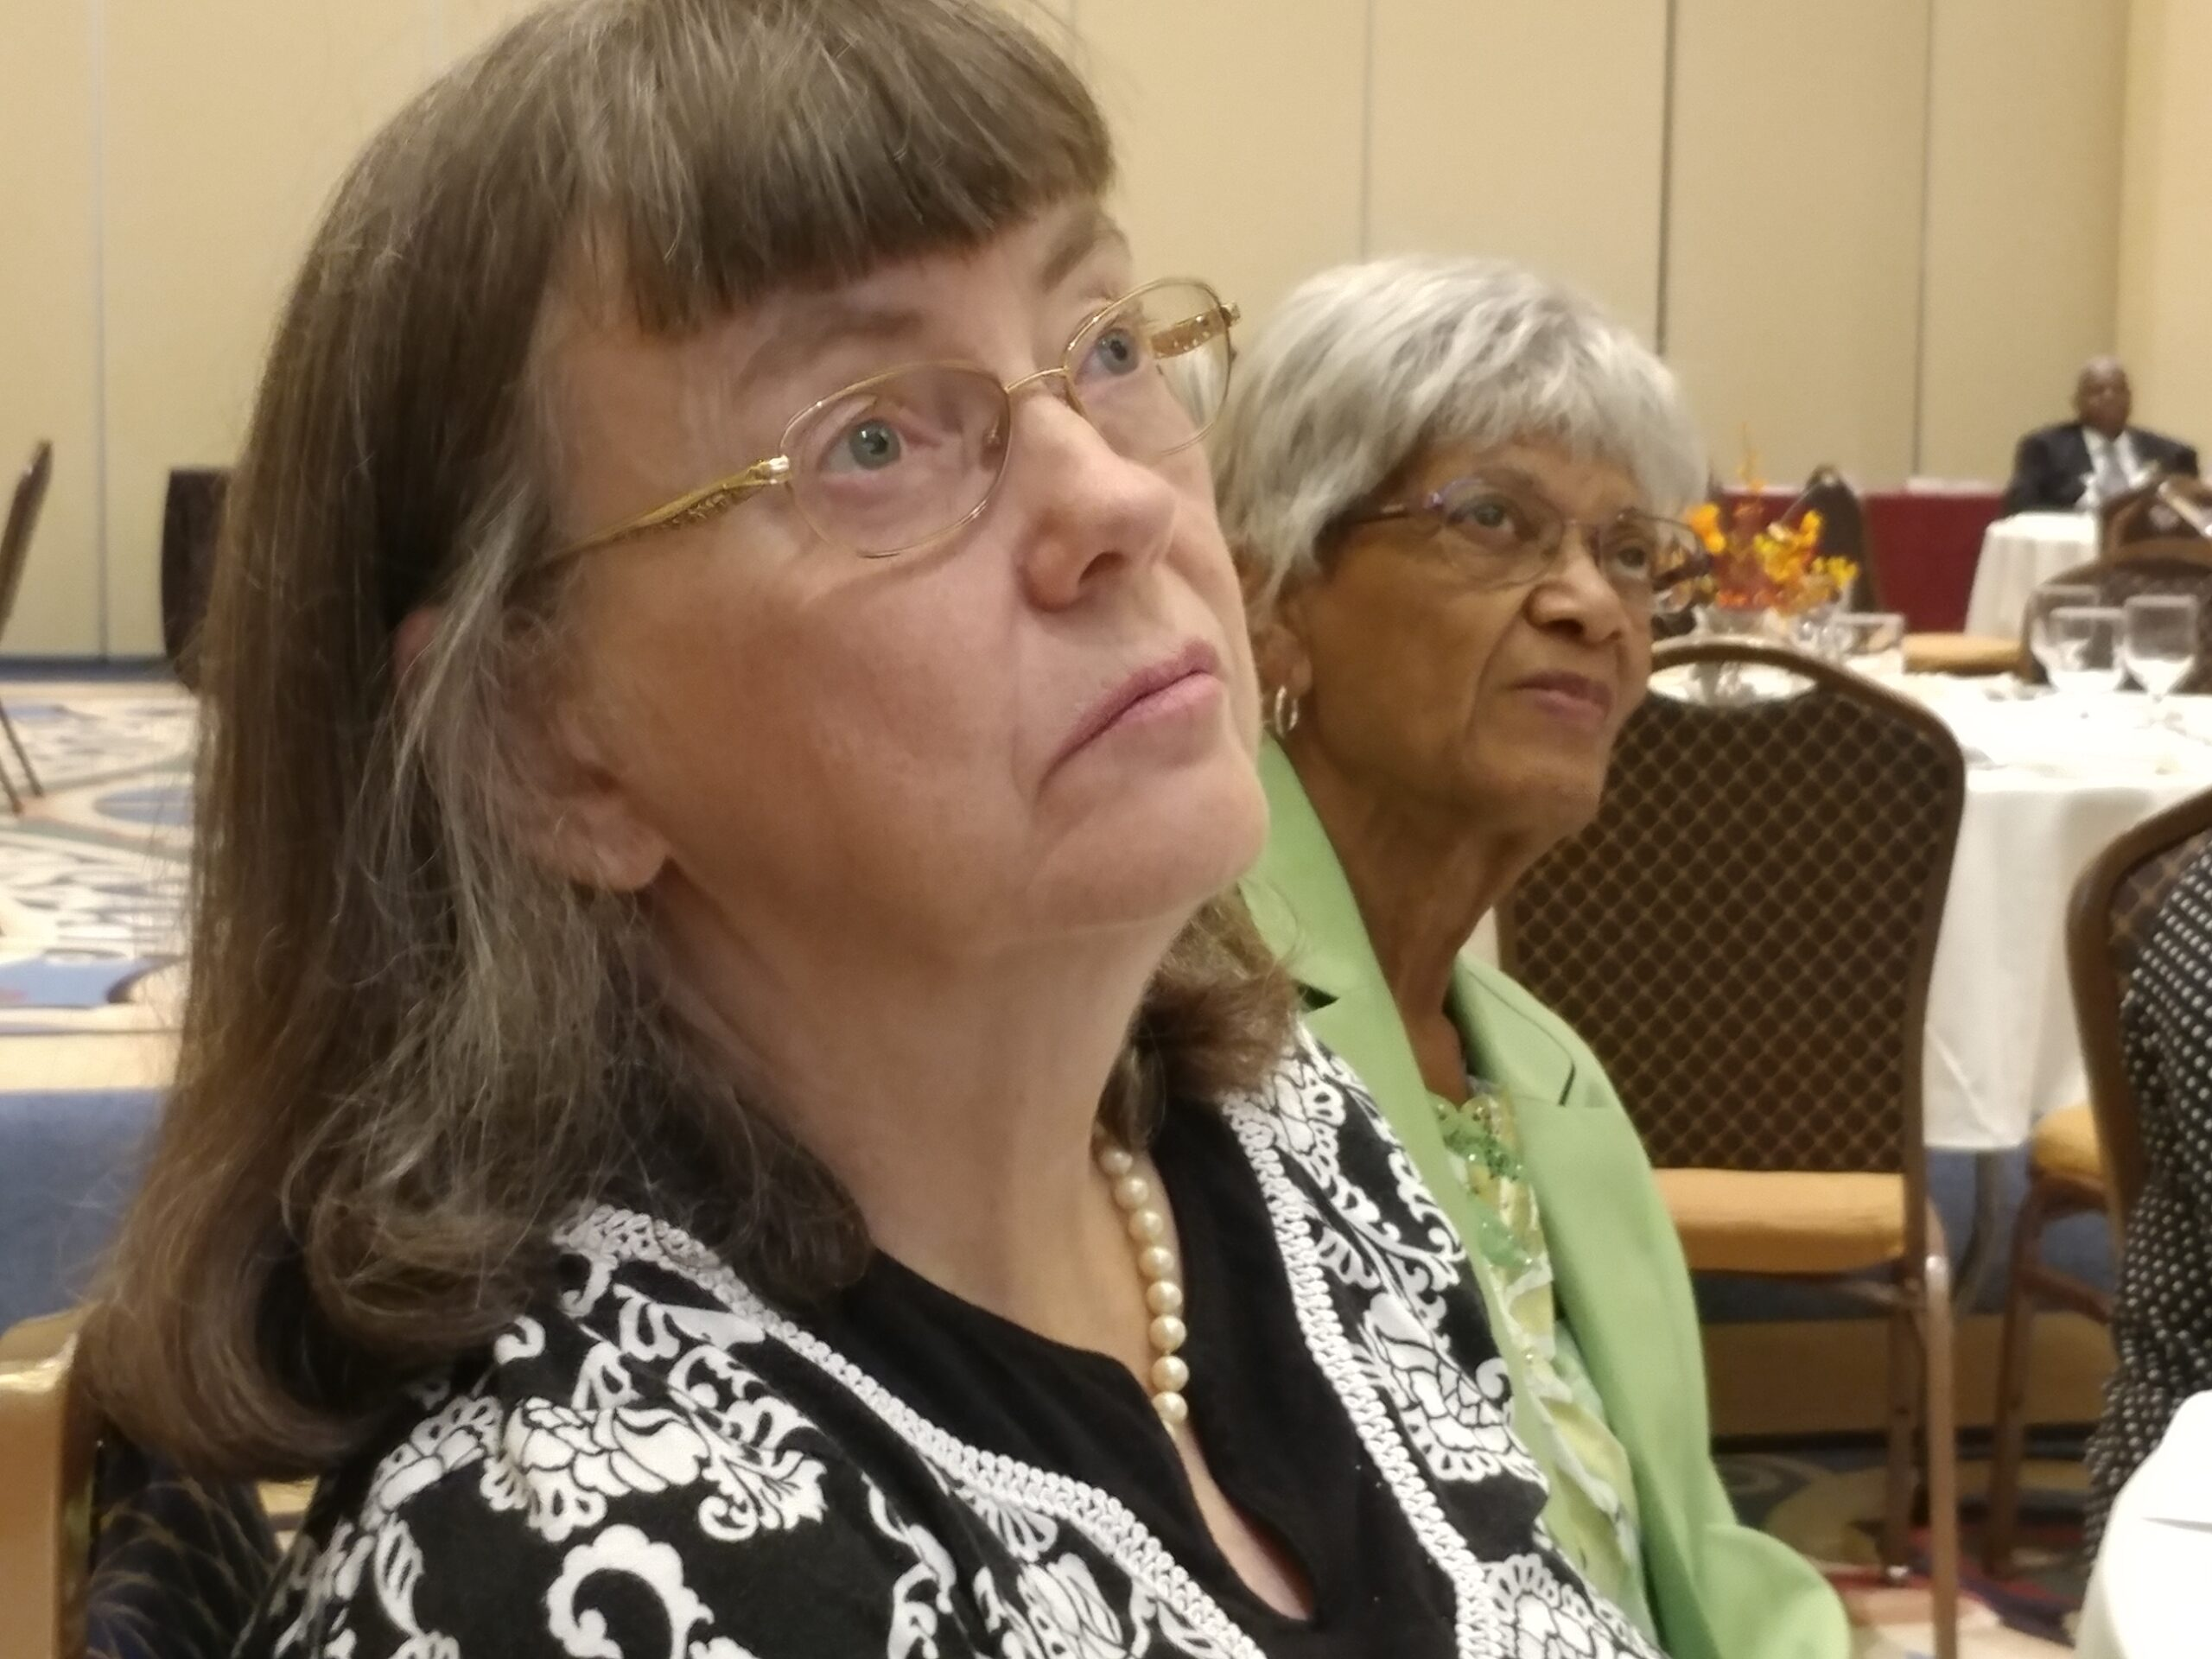 Two older women sitting at an event, paying attention to the event speaker.